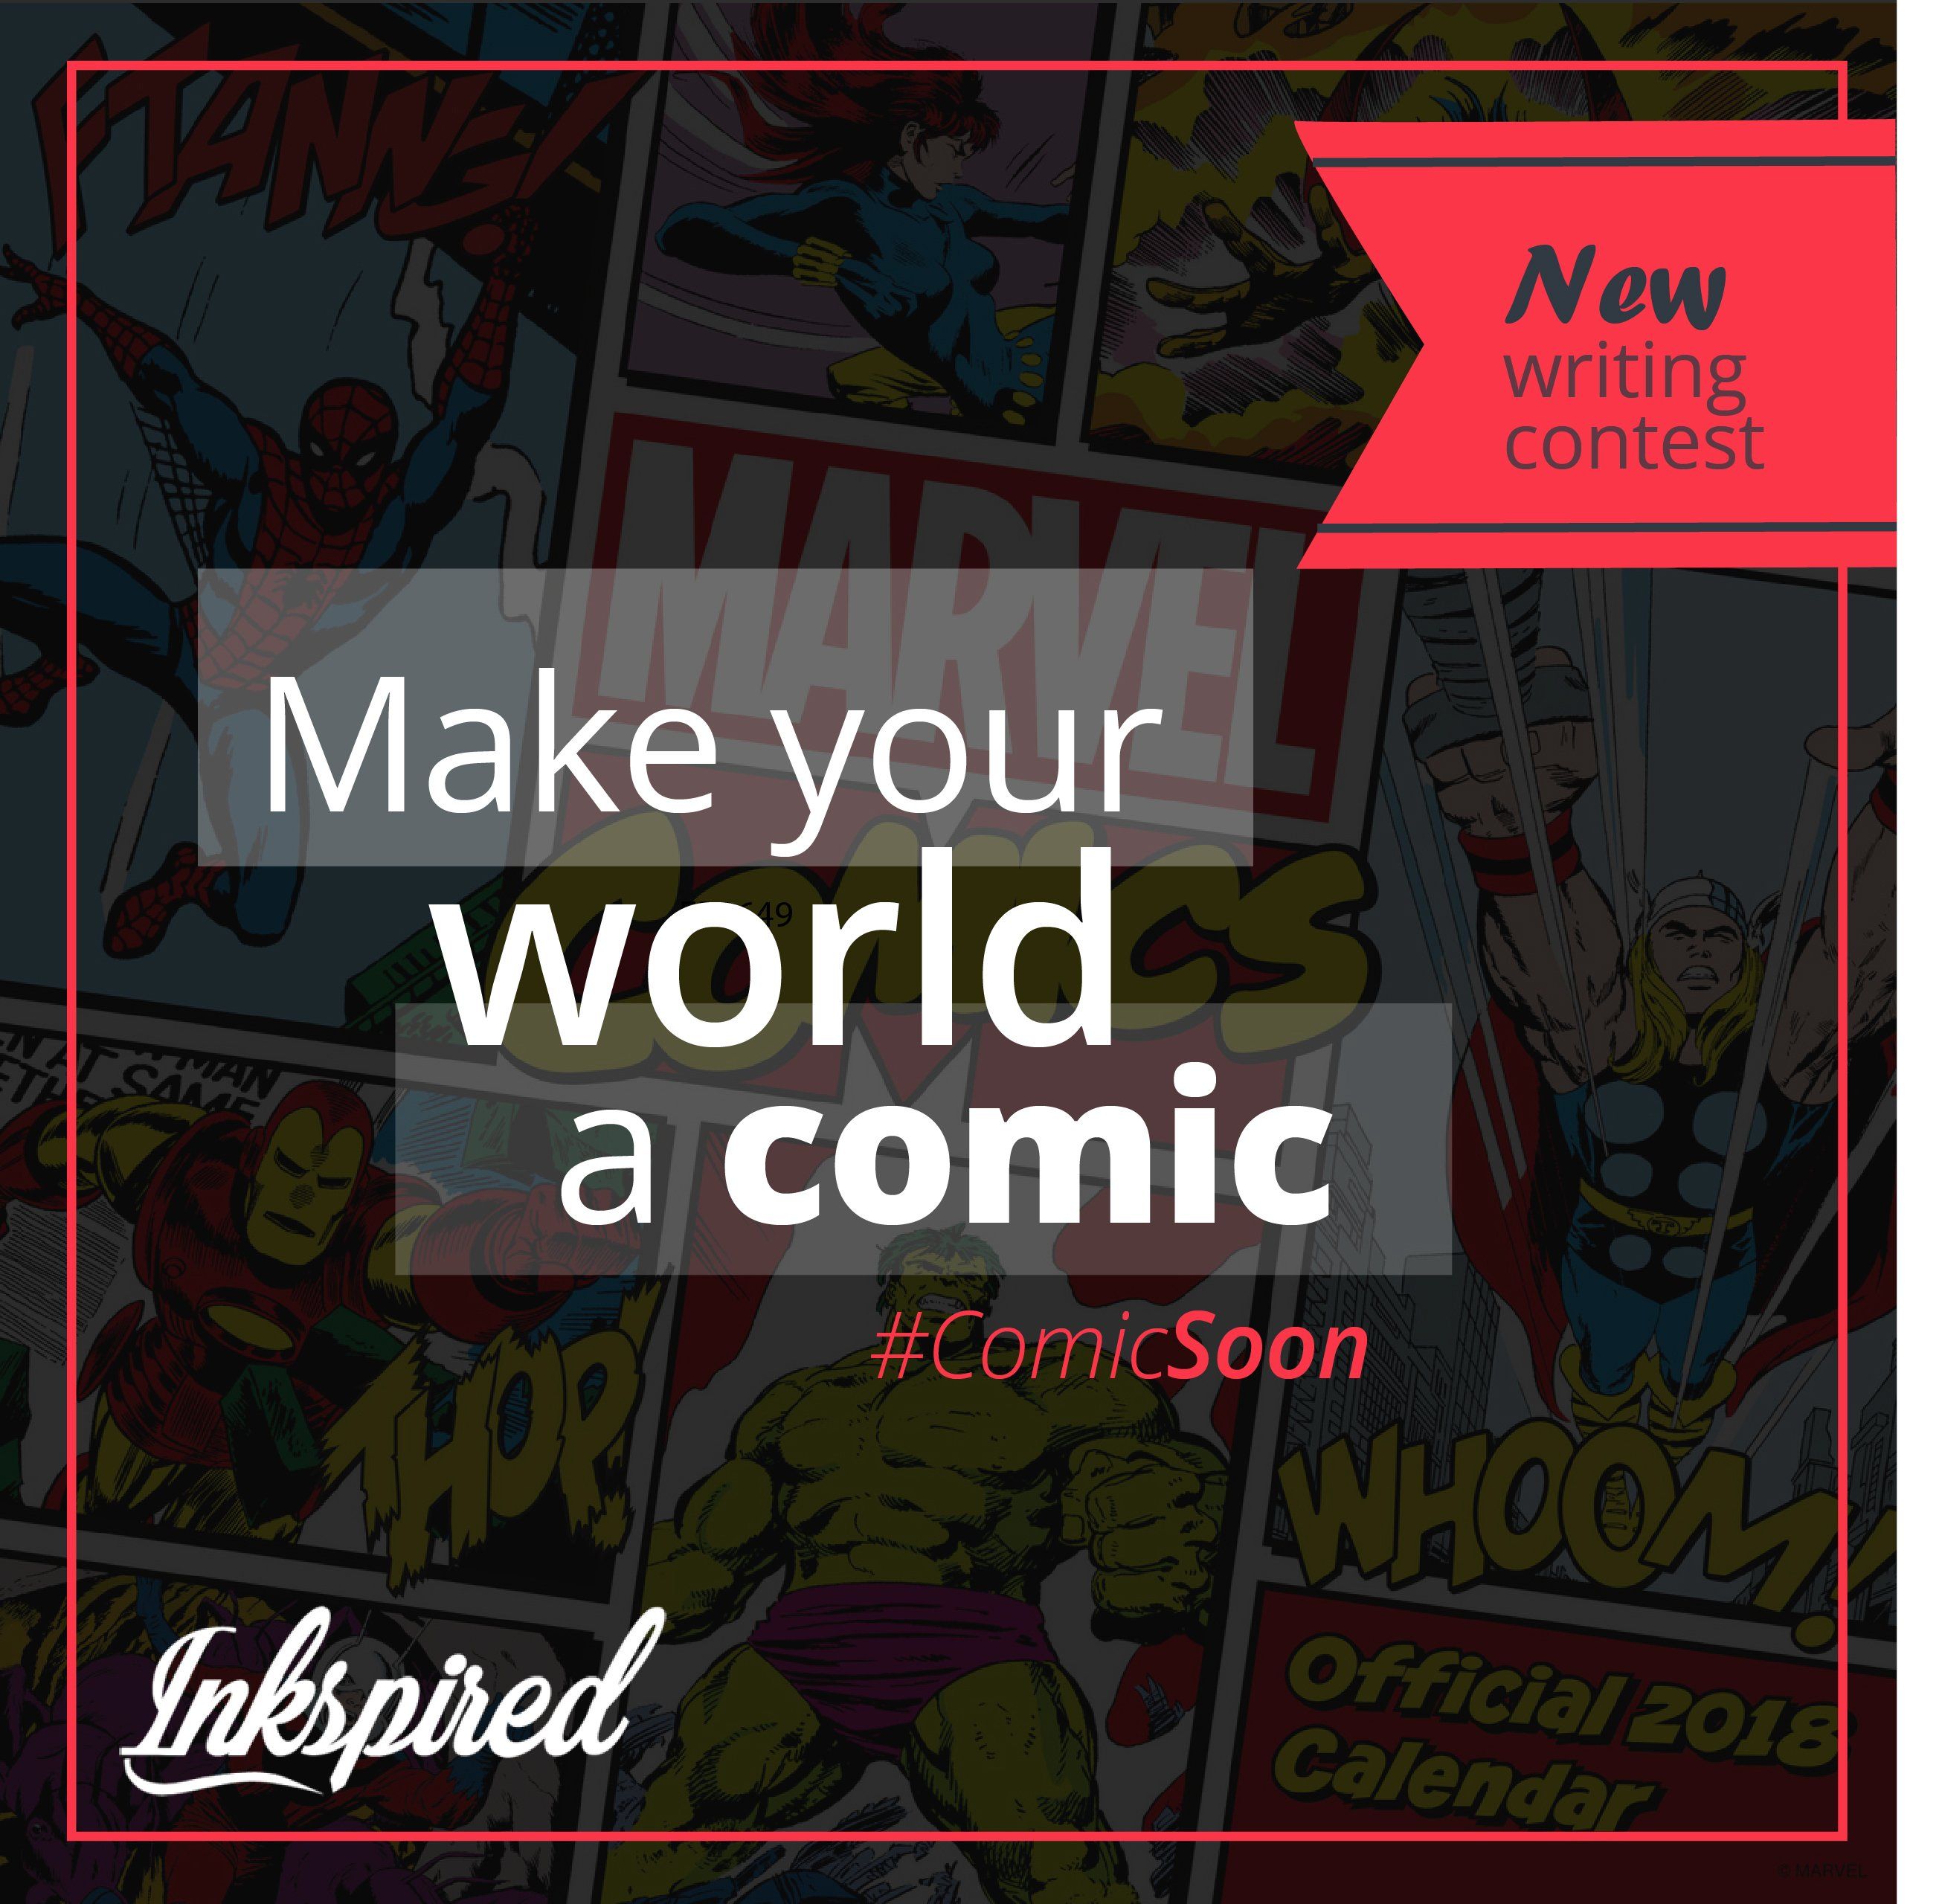 Make your world a comic